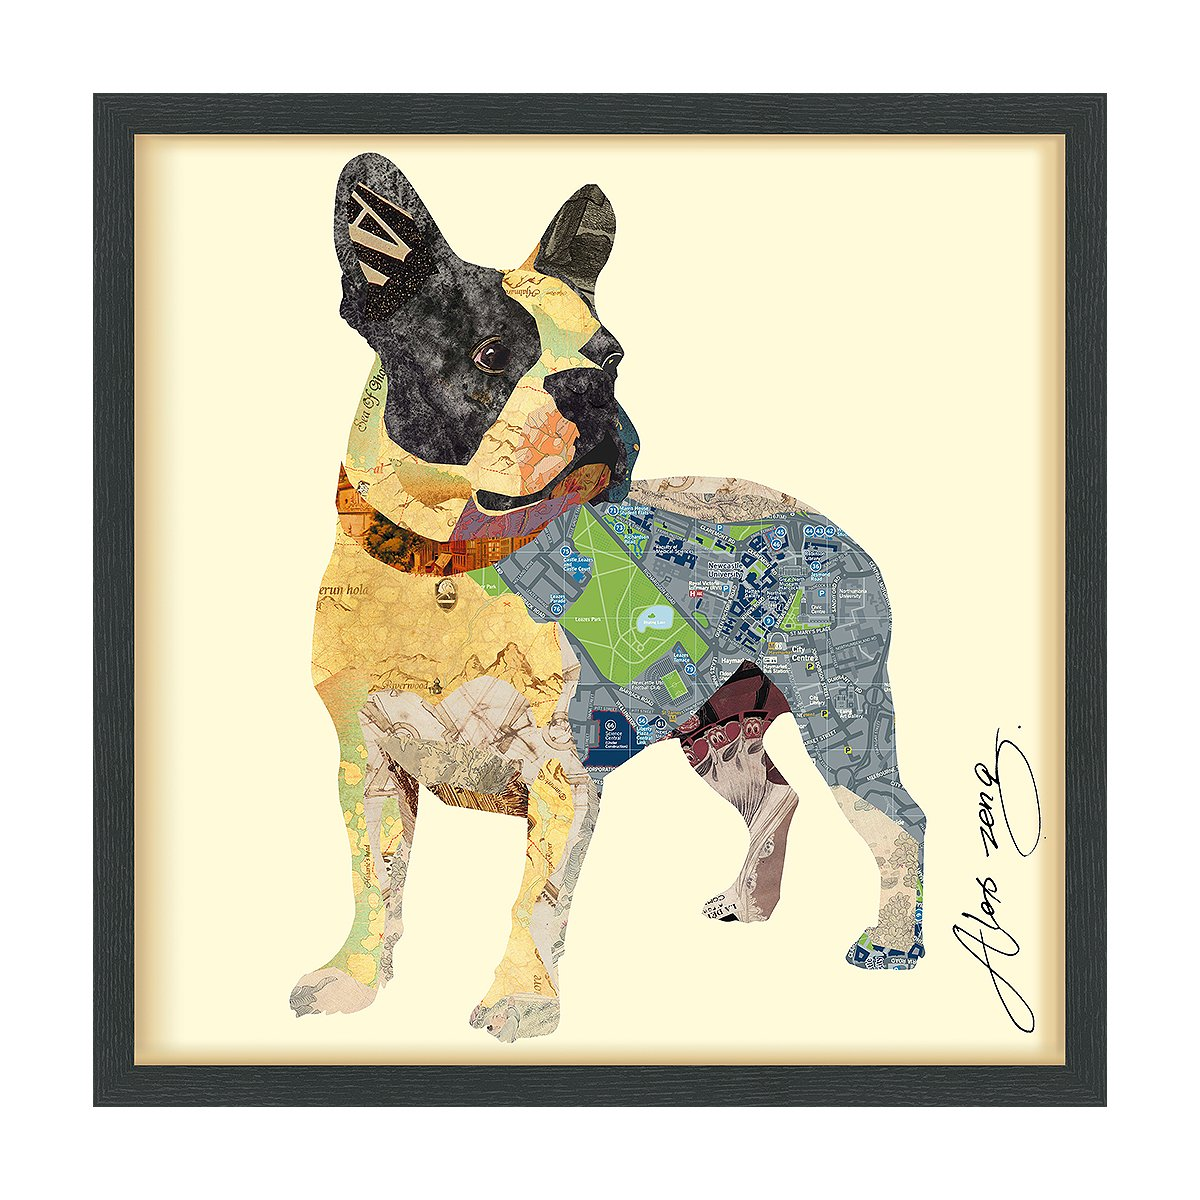 Empire Art Direct ''Boston Terrier'' Dimensional Art Collage Hand Signed by Alex Zeng Framed Graphic Wall Art by Empire Art Direct